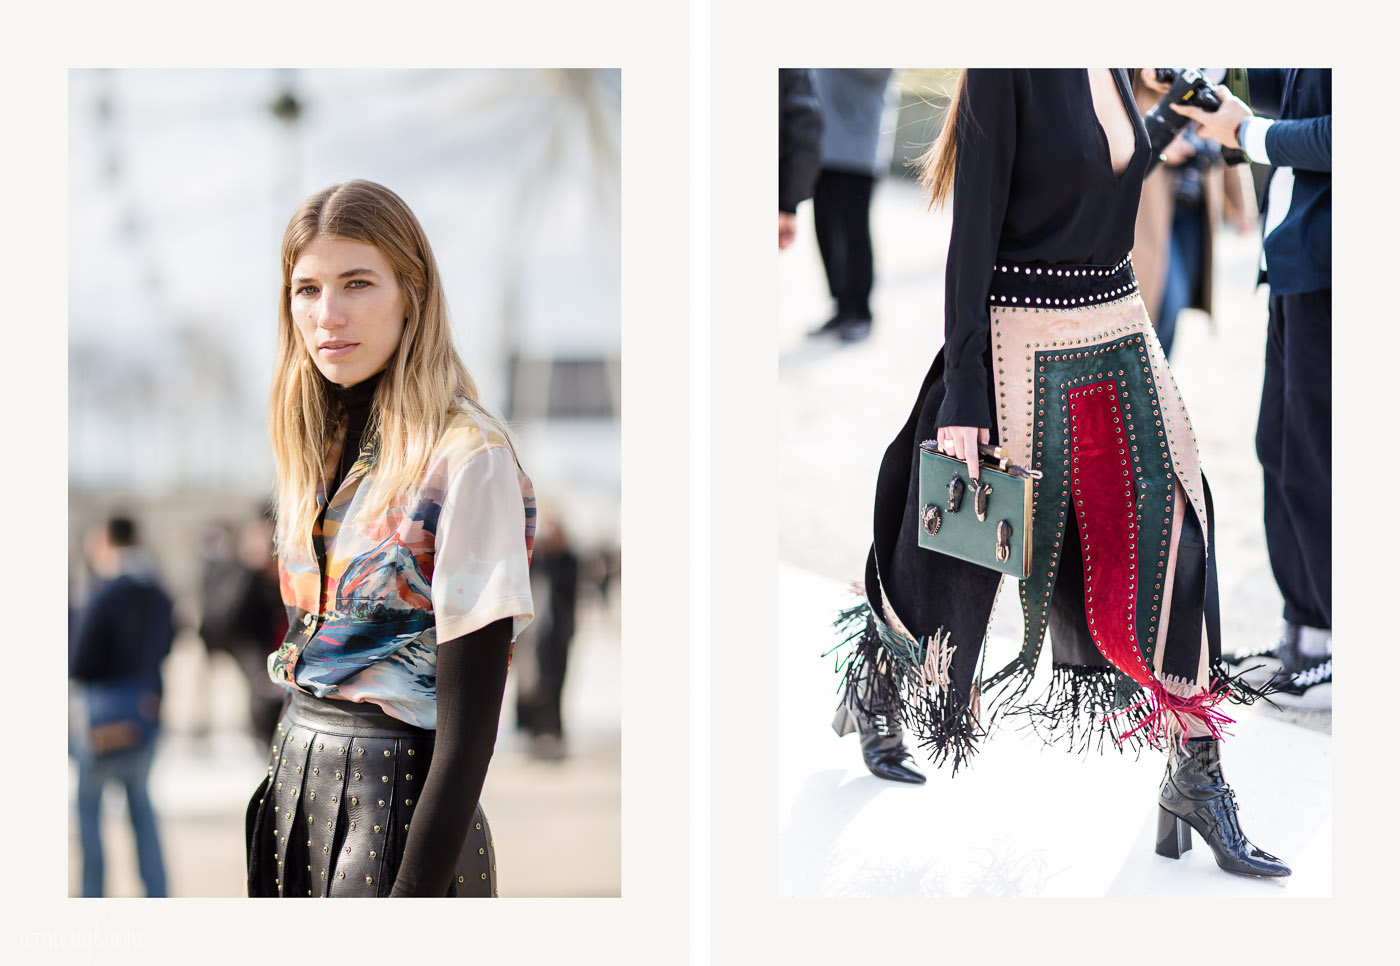 Veronika Heilbronner Street Style Looks at Paris Fashion Week | Armenyl.com